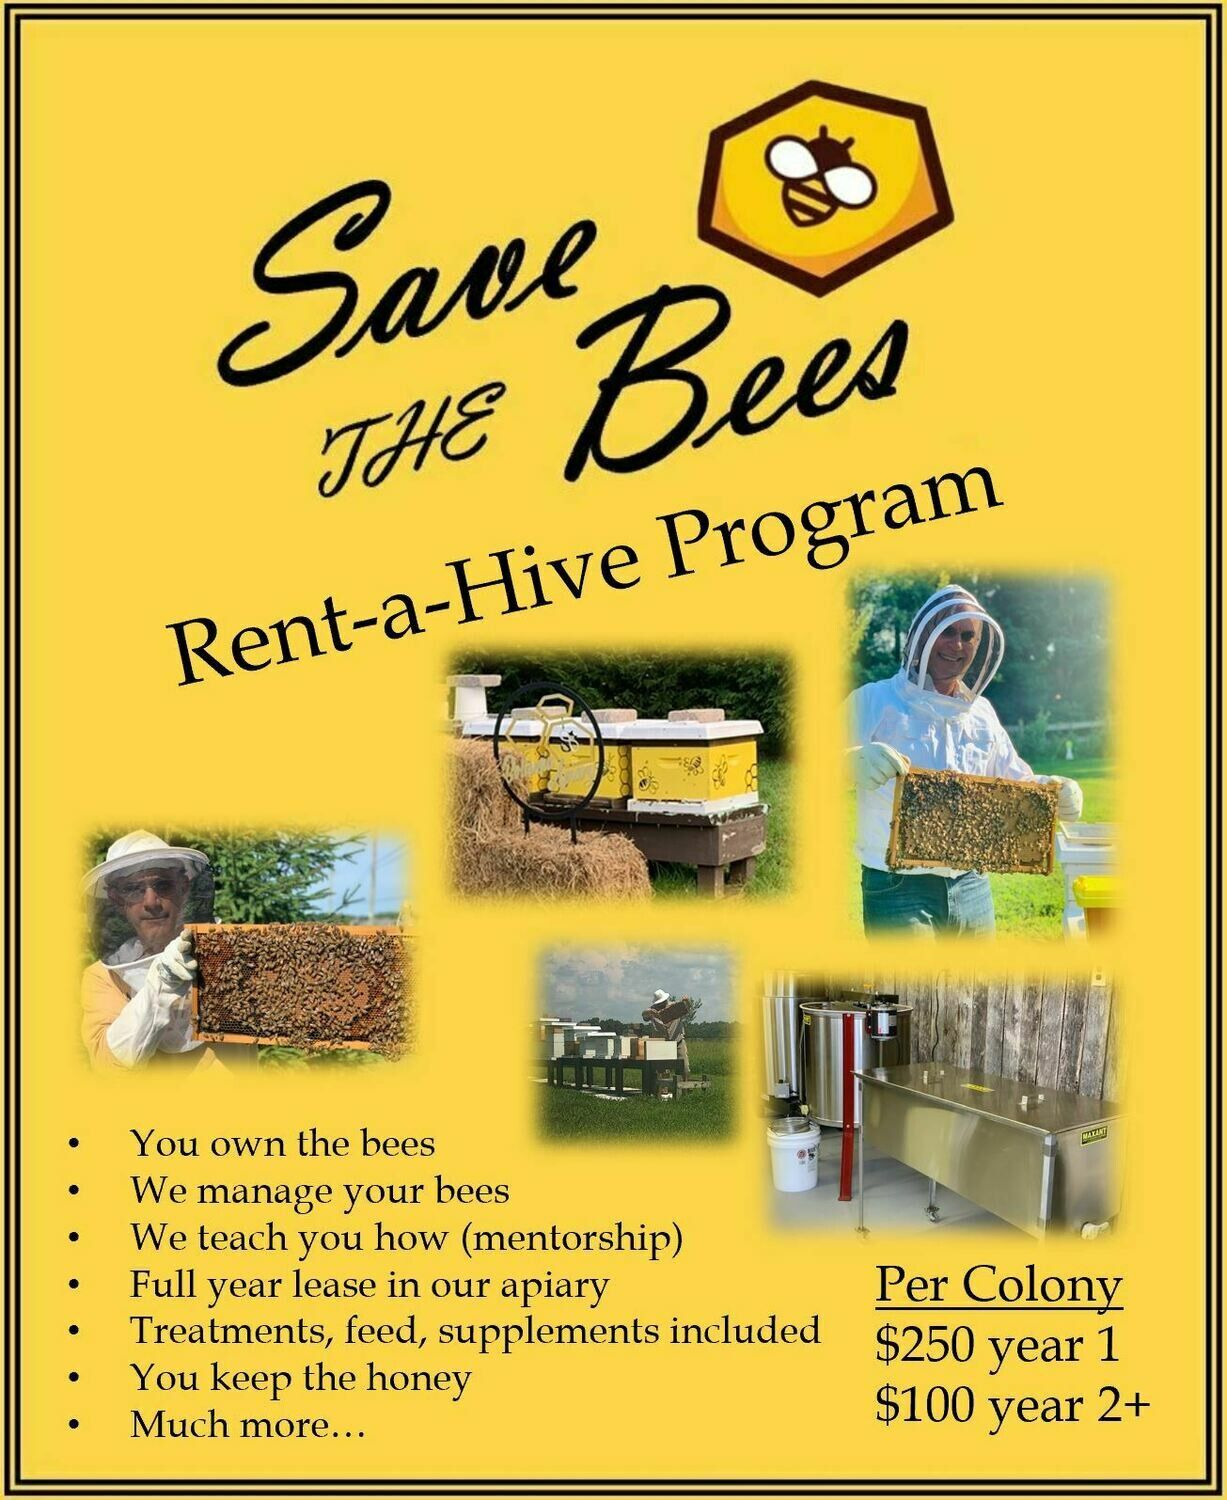 Learn about beekeeping when you Rent-a-Hive